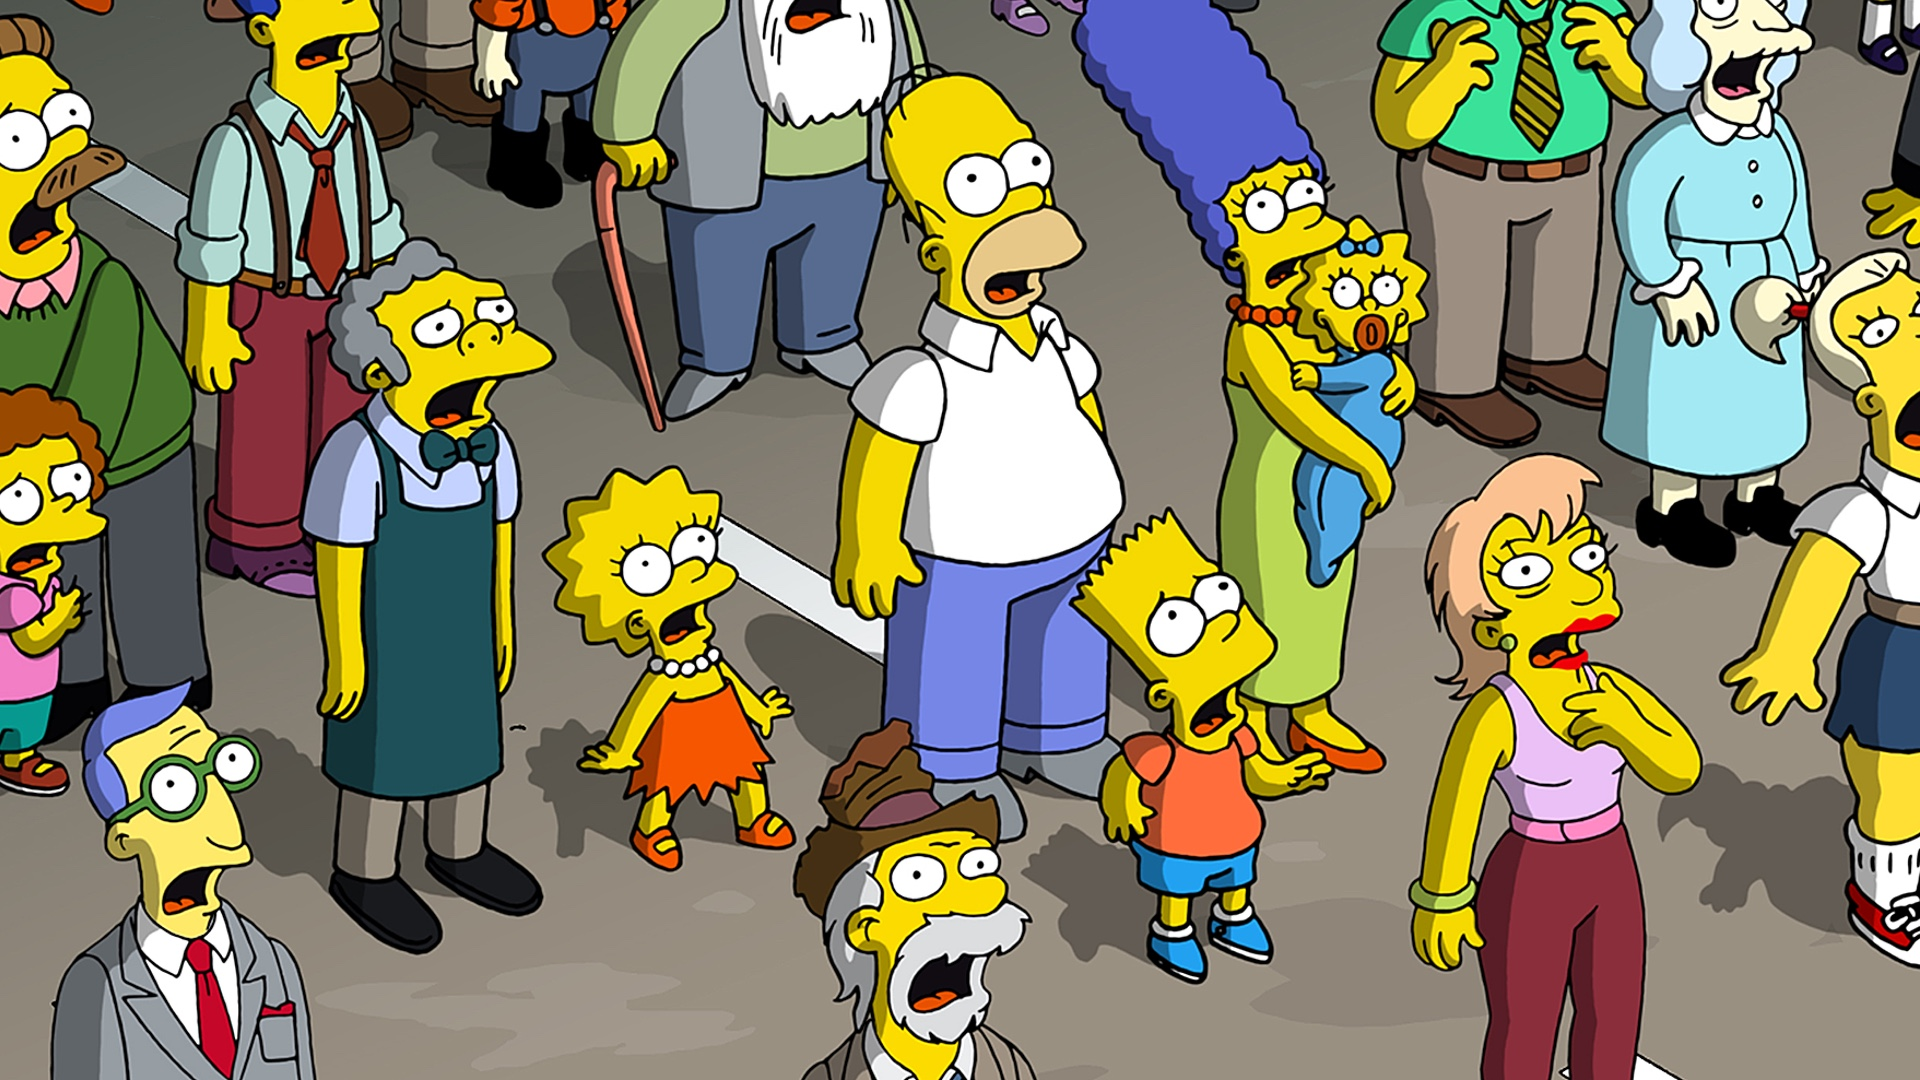 fox is reportedly developing a simpsons sequel and films for bob's